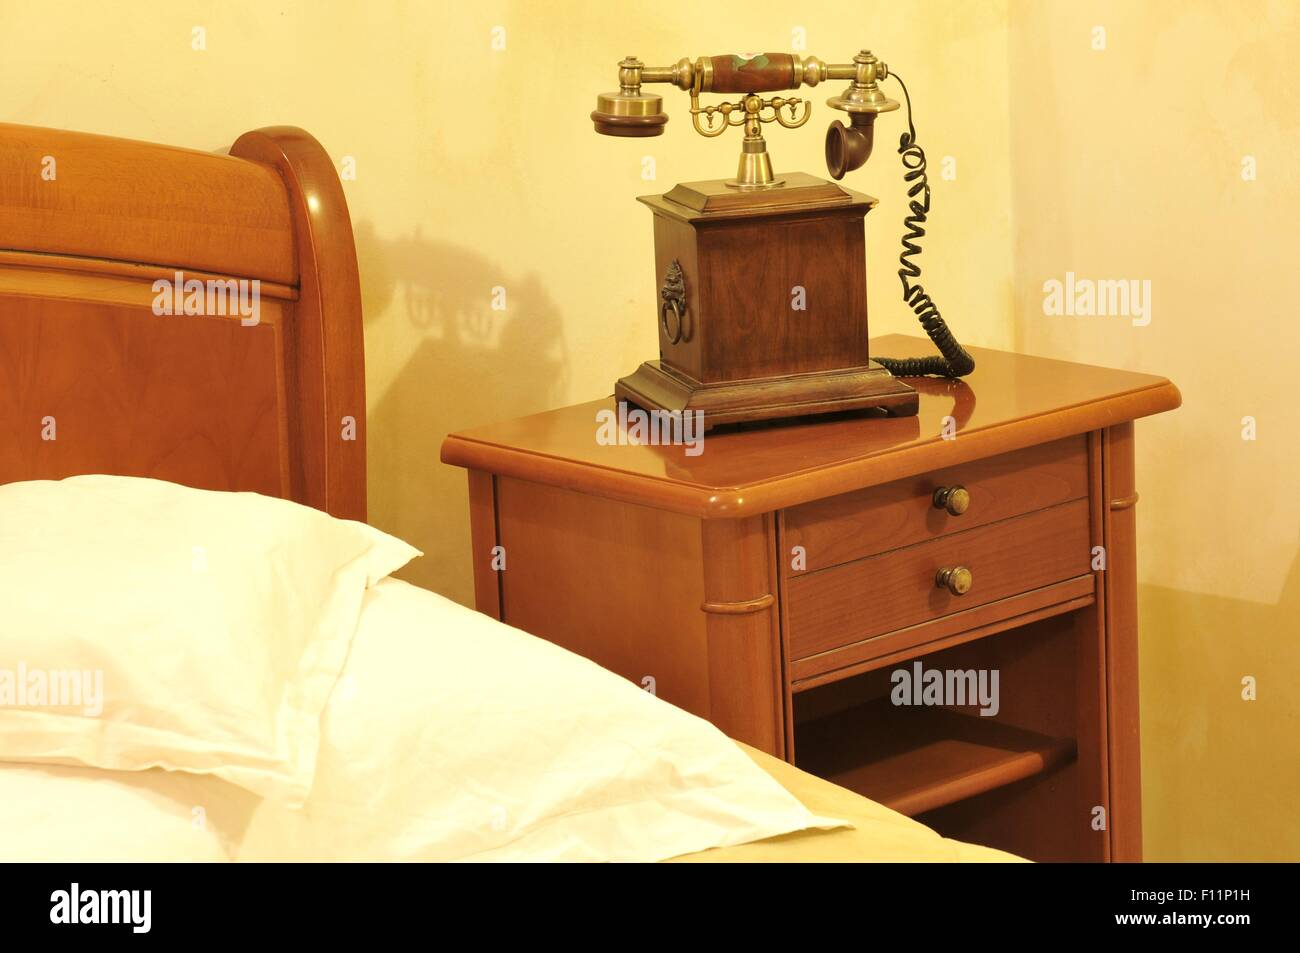 Detail of telephone by the bed in vintage bedroom - Stock Image